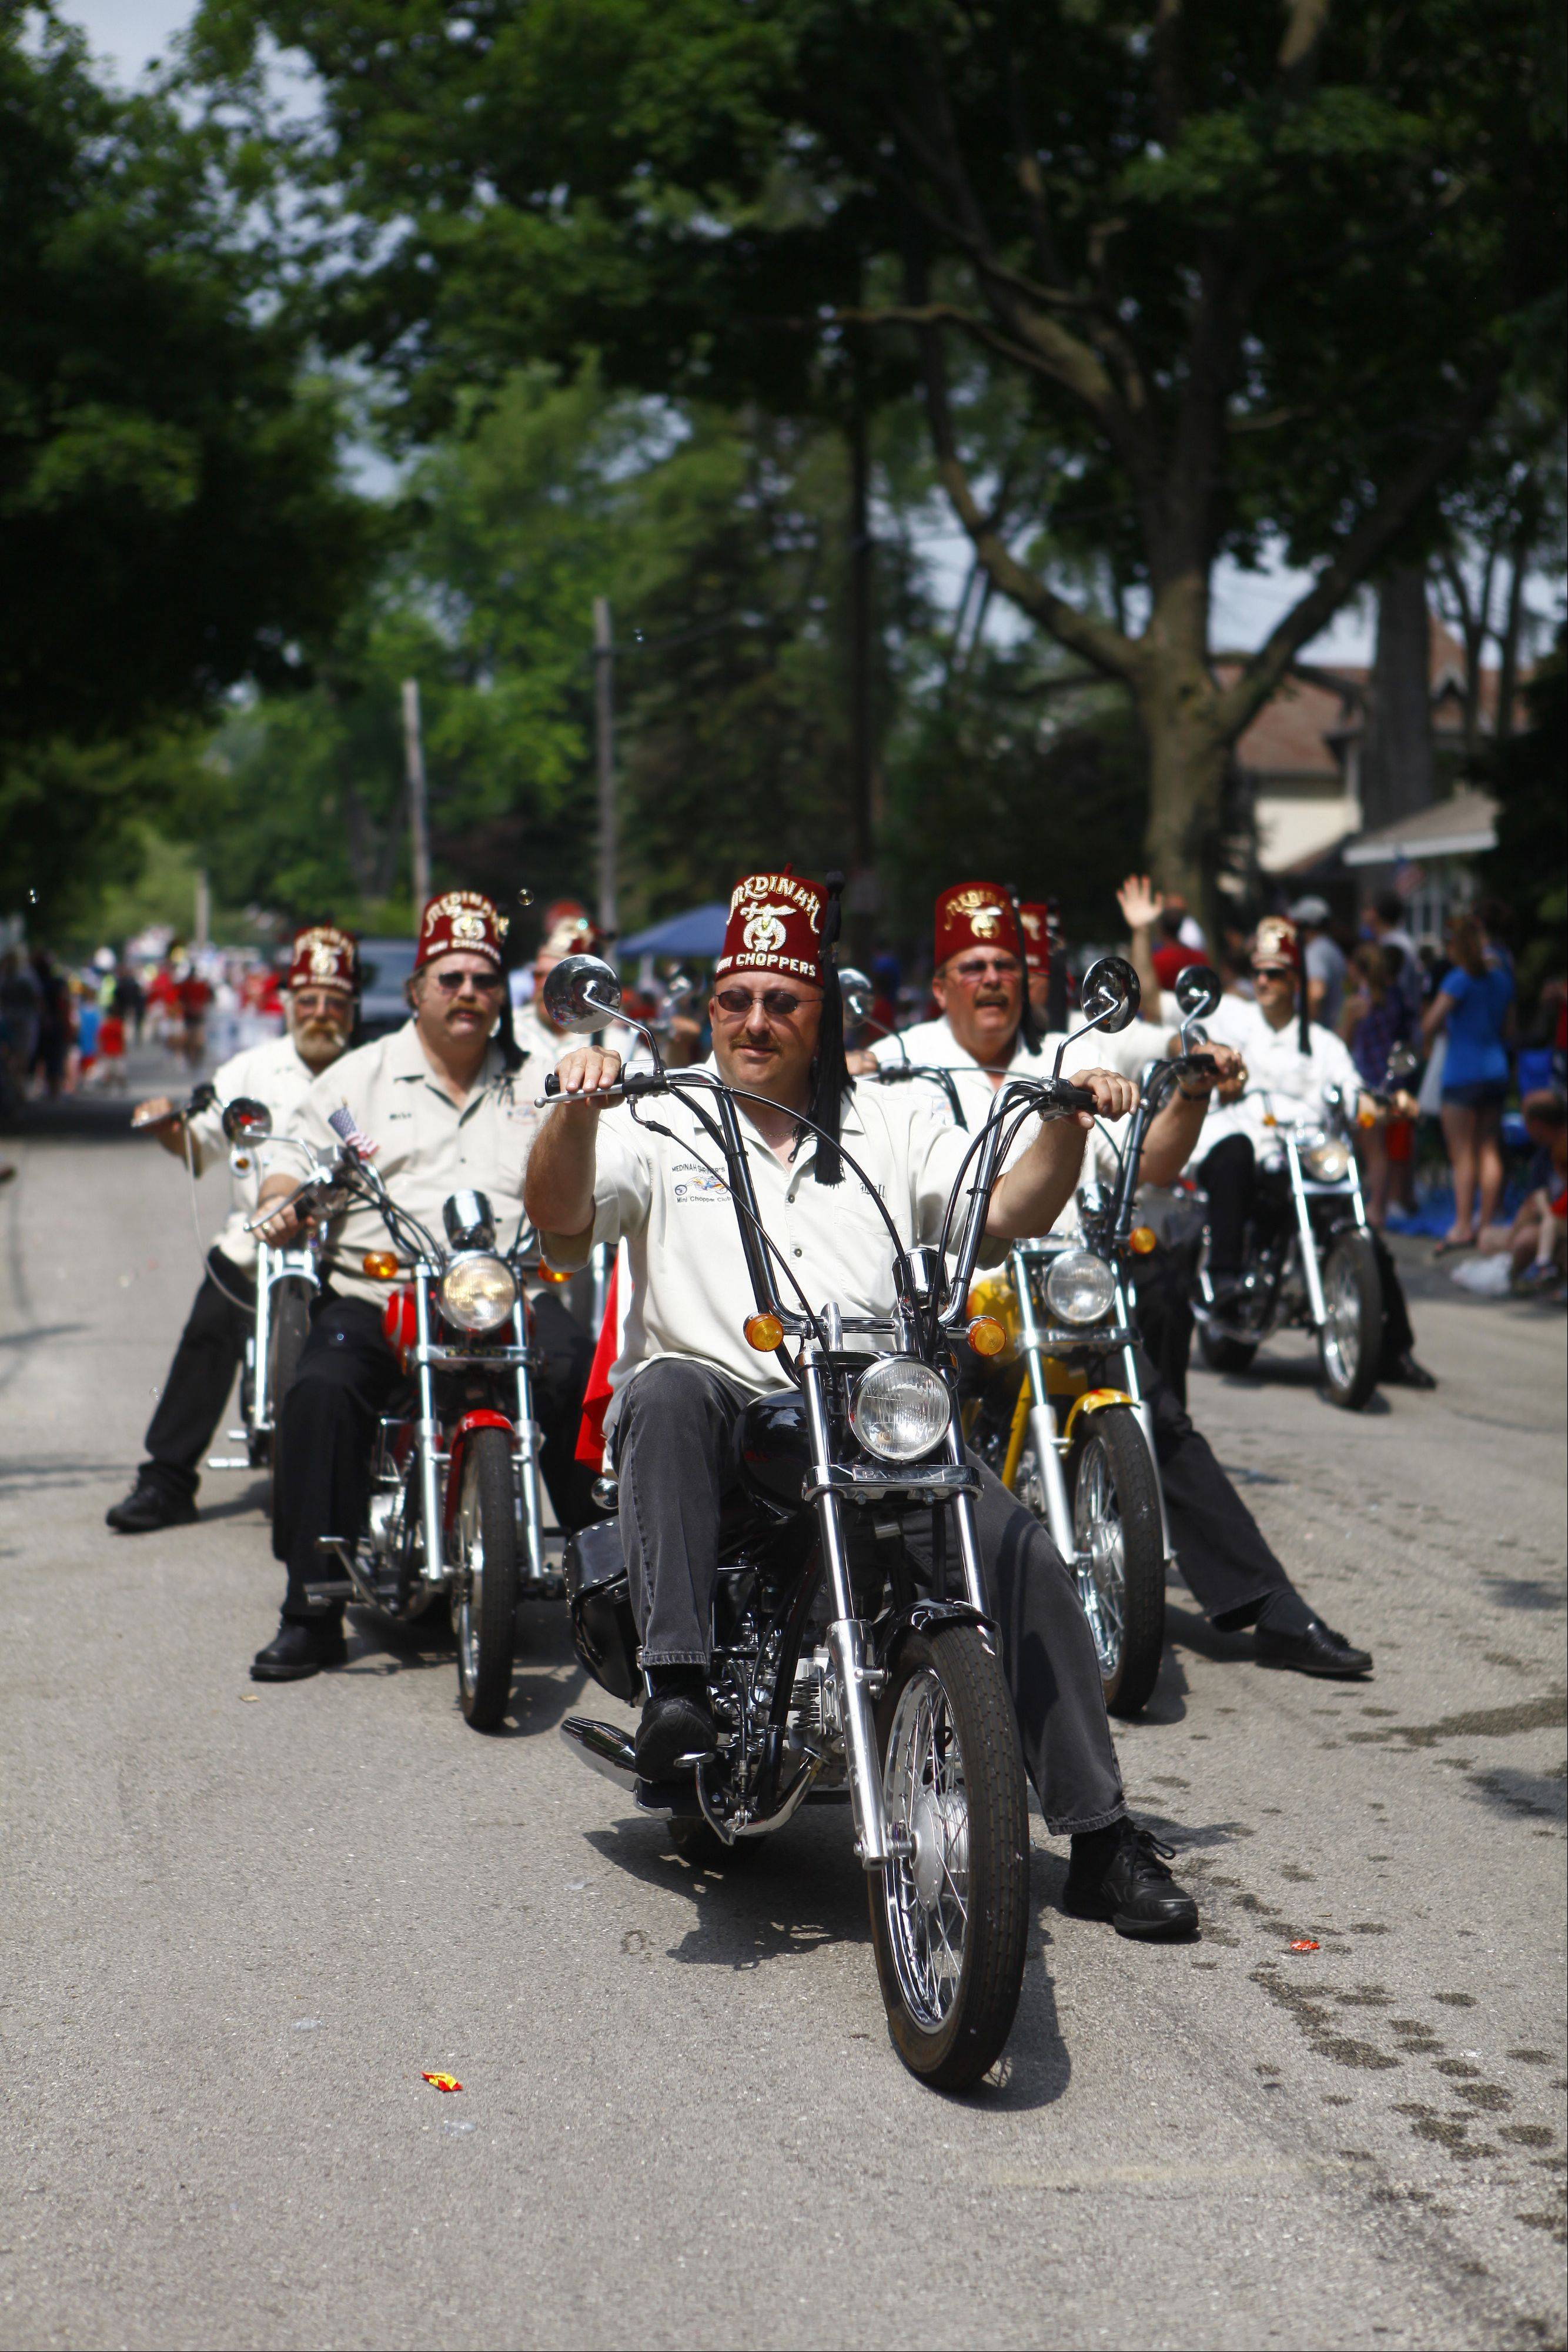 Members of the Shriners club ride past the crowd on motorcycles during the annual Palatine Jaycees Independence Day Parade Saturday morning.